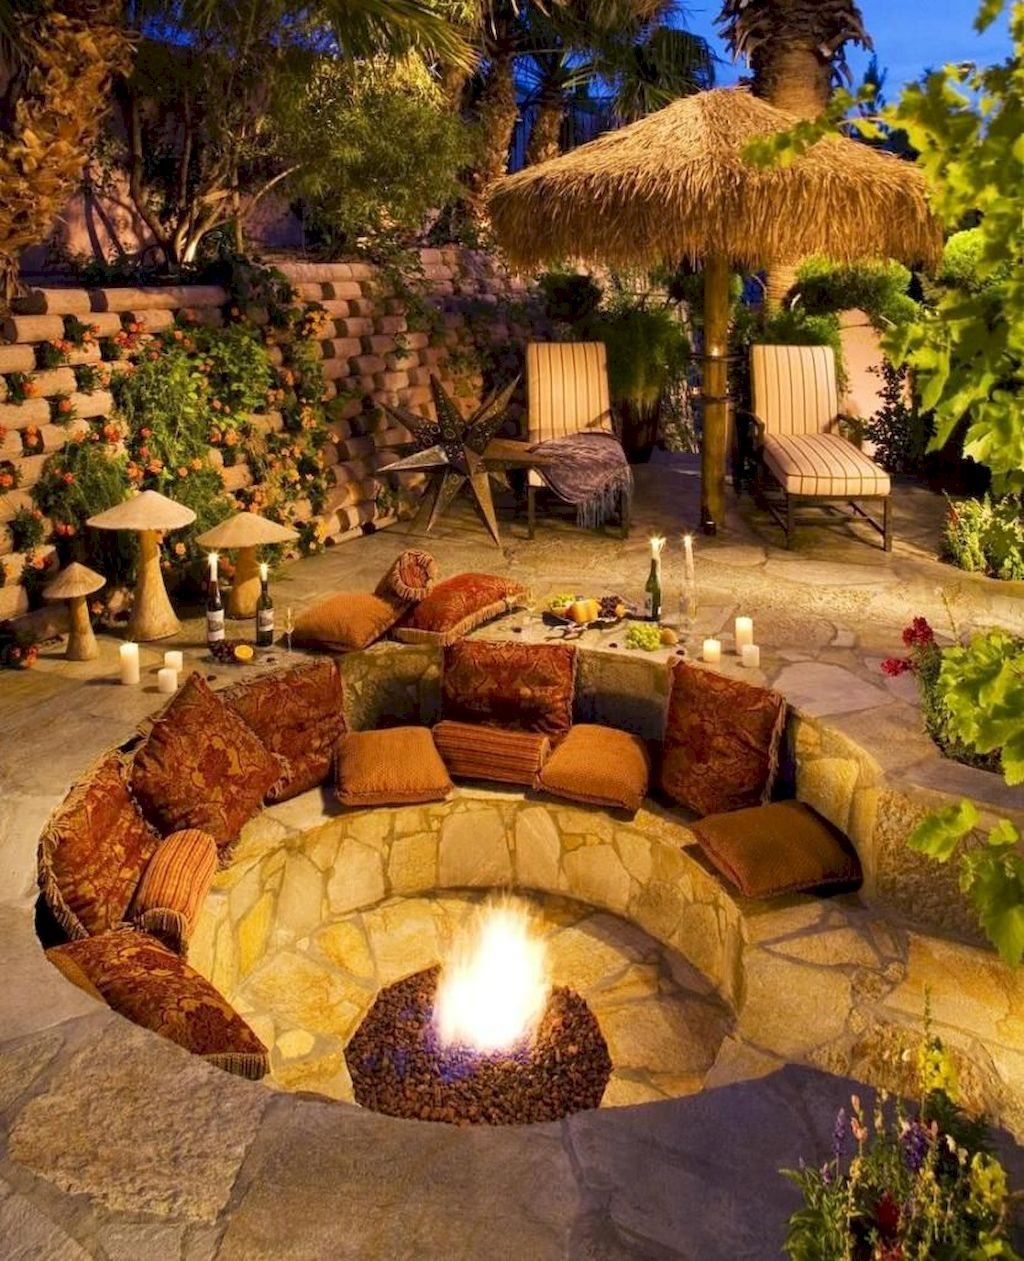 75 Incredible Outdoor Patio Design Ideas for Backyard is part of Garden sitting areas - Outdoor patios are usually viewed as an extension of indoor living space  Whether it's comprised of stone, brick or concrete, this area is used as a socializing place, especially when there's a grill or fire pit present  Throw in an… Continue Reading →